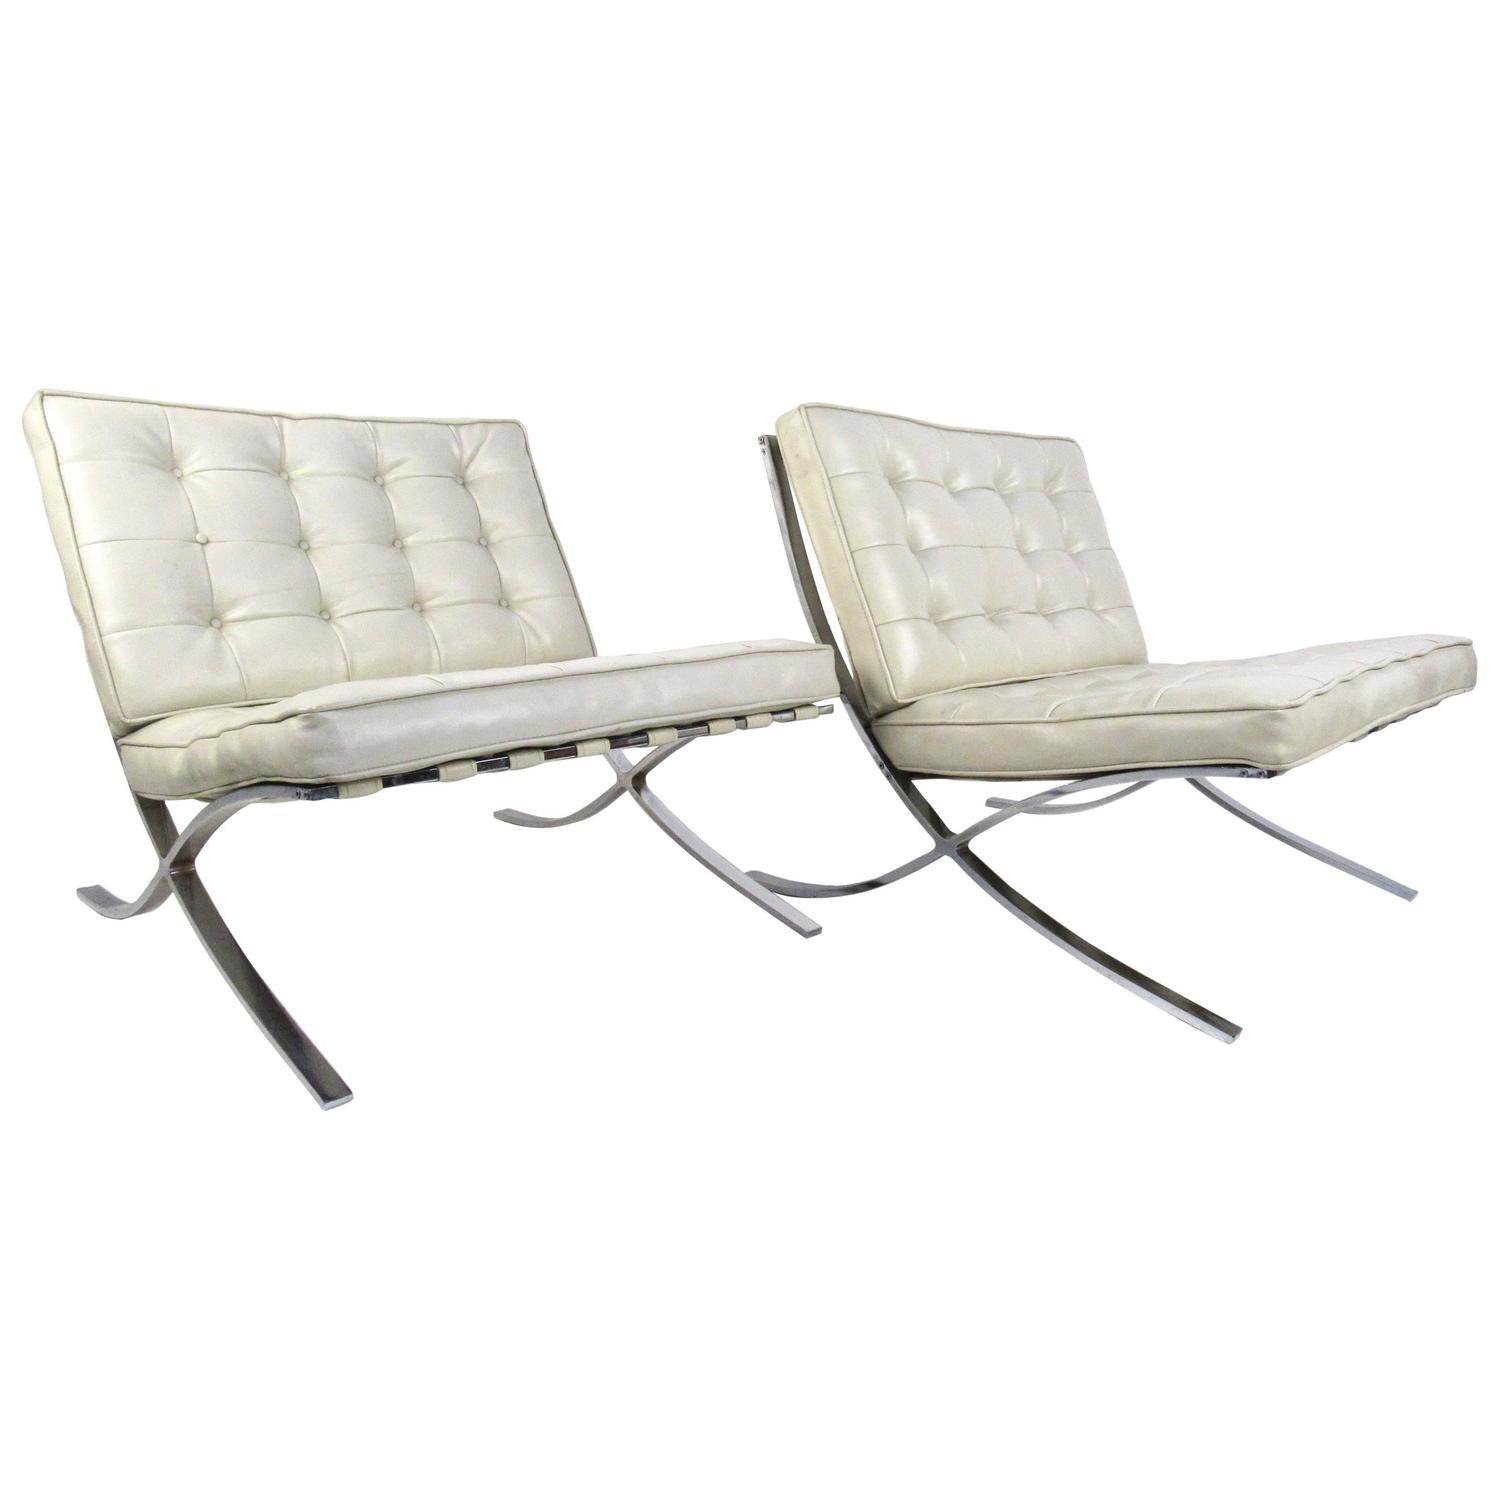 Mid century modern barcelona style lounge chairs for sale at 1stdibs